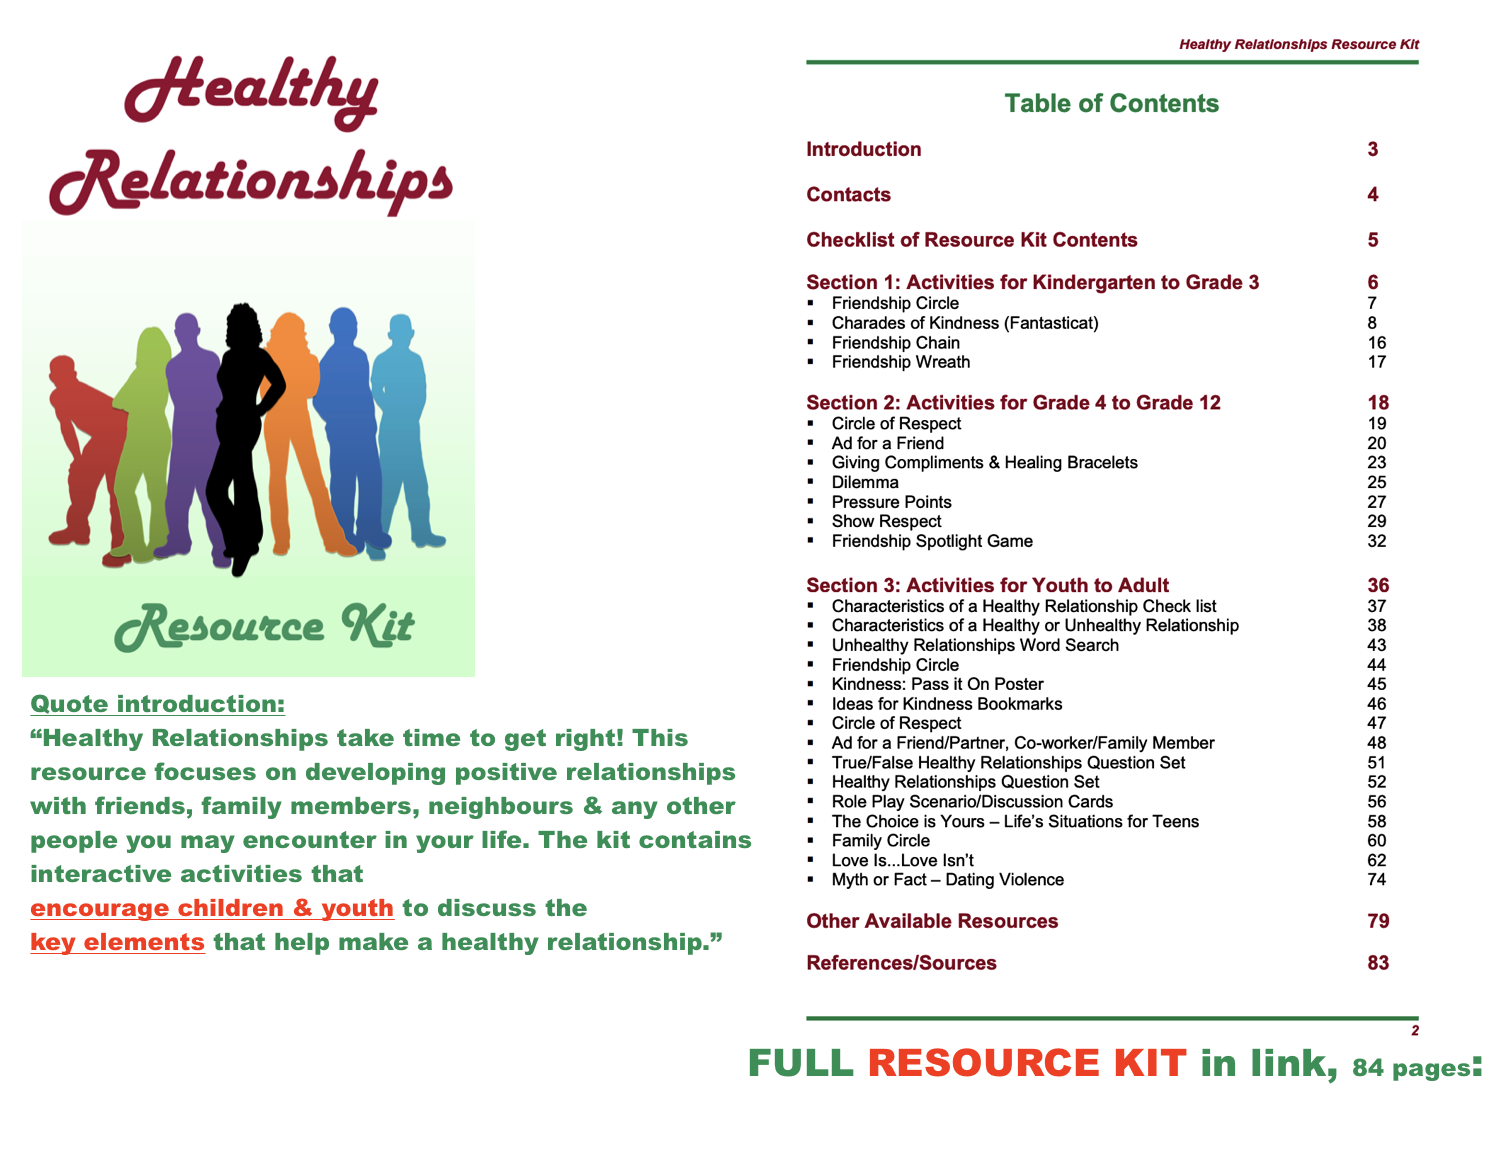 Resource Kit Healthy Relationships Quote Introduction